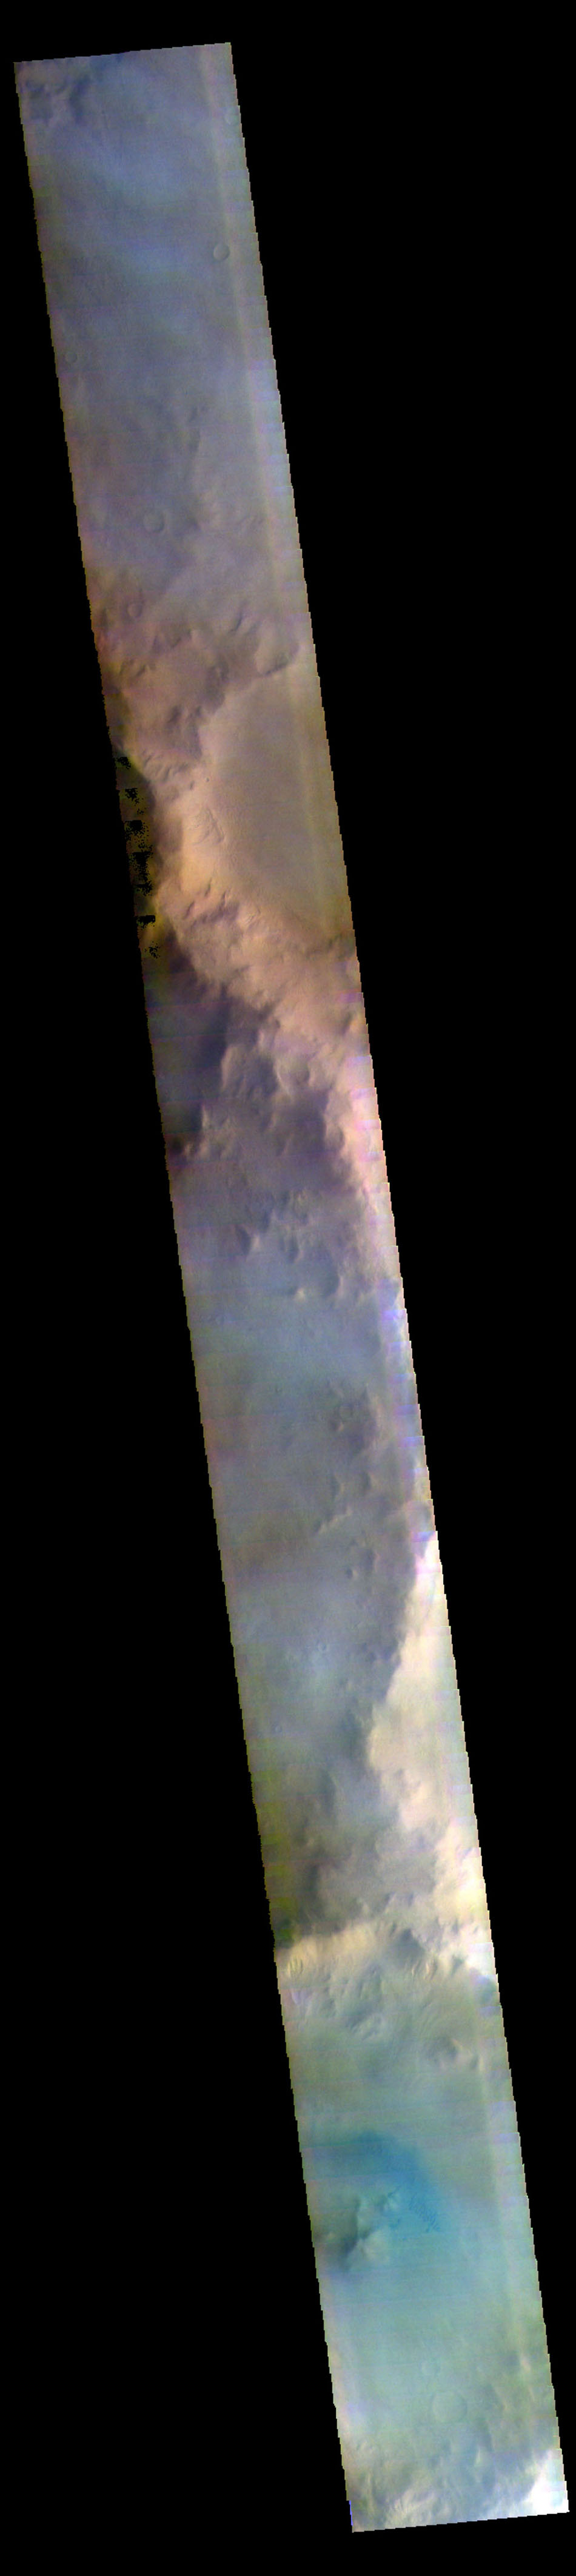 The THEMIS camera contains 5 filters. Data from different filters can be combined in many ways to create a false color image. This image from NASA's 2001 Mars Odyssey spacecraft shows part of the plains and craters of Terra Sirenum.